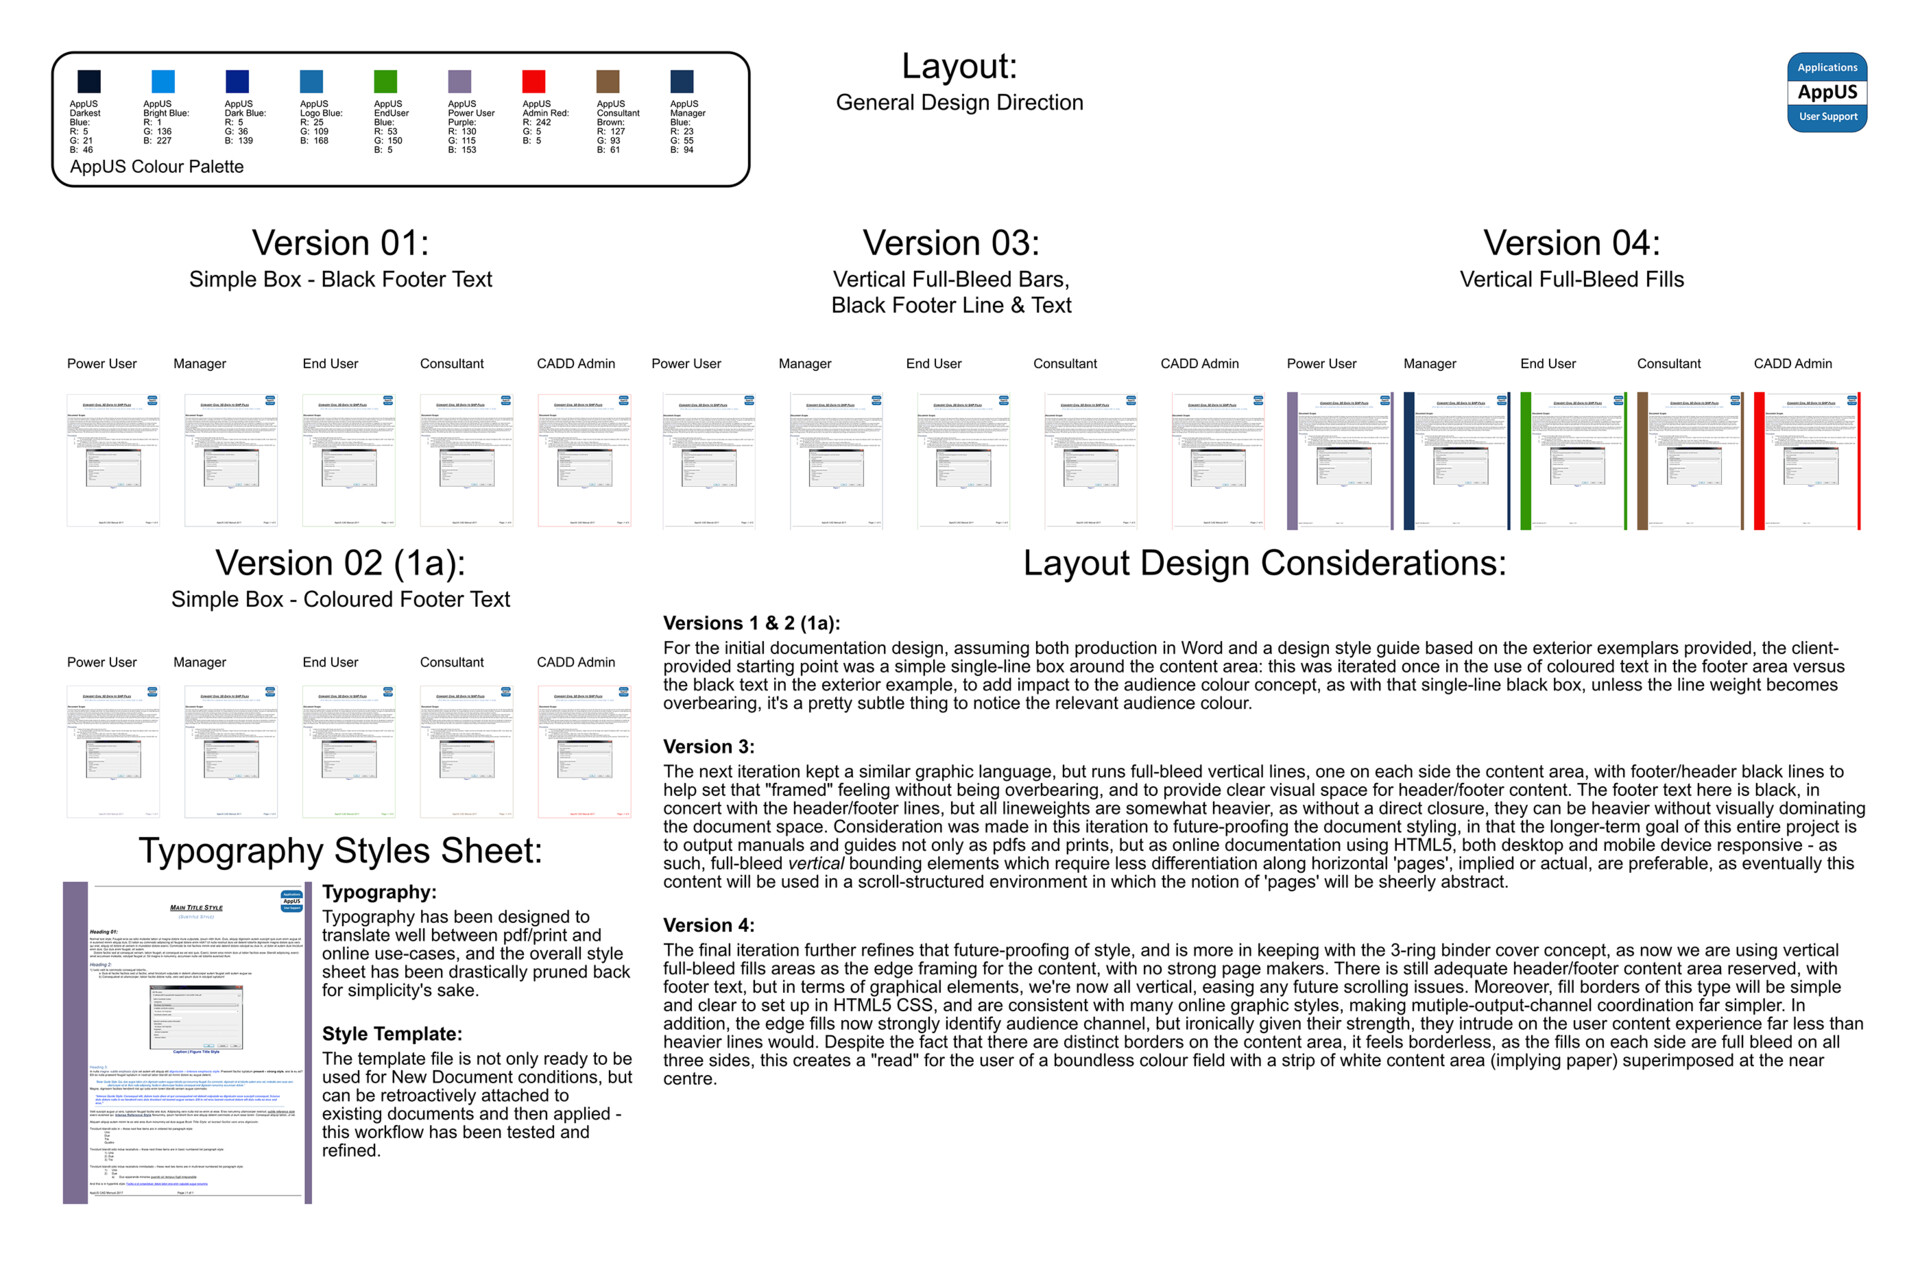 Meta documentation of design / layout process capturing client's committee decisions in flow